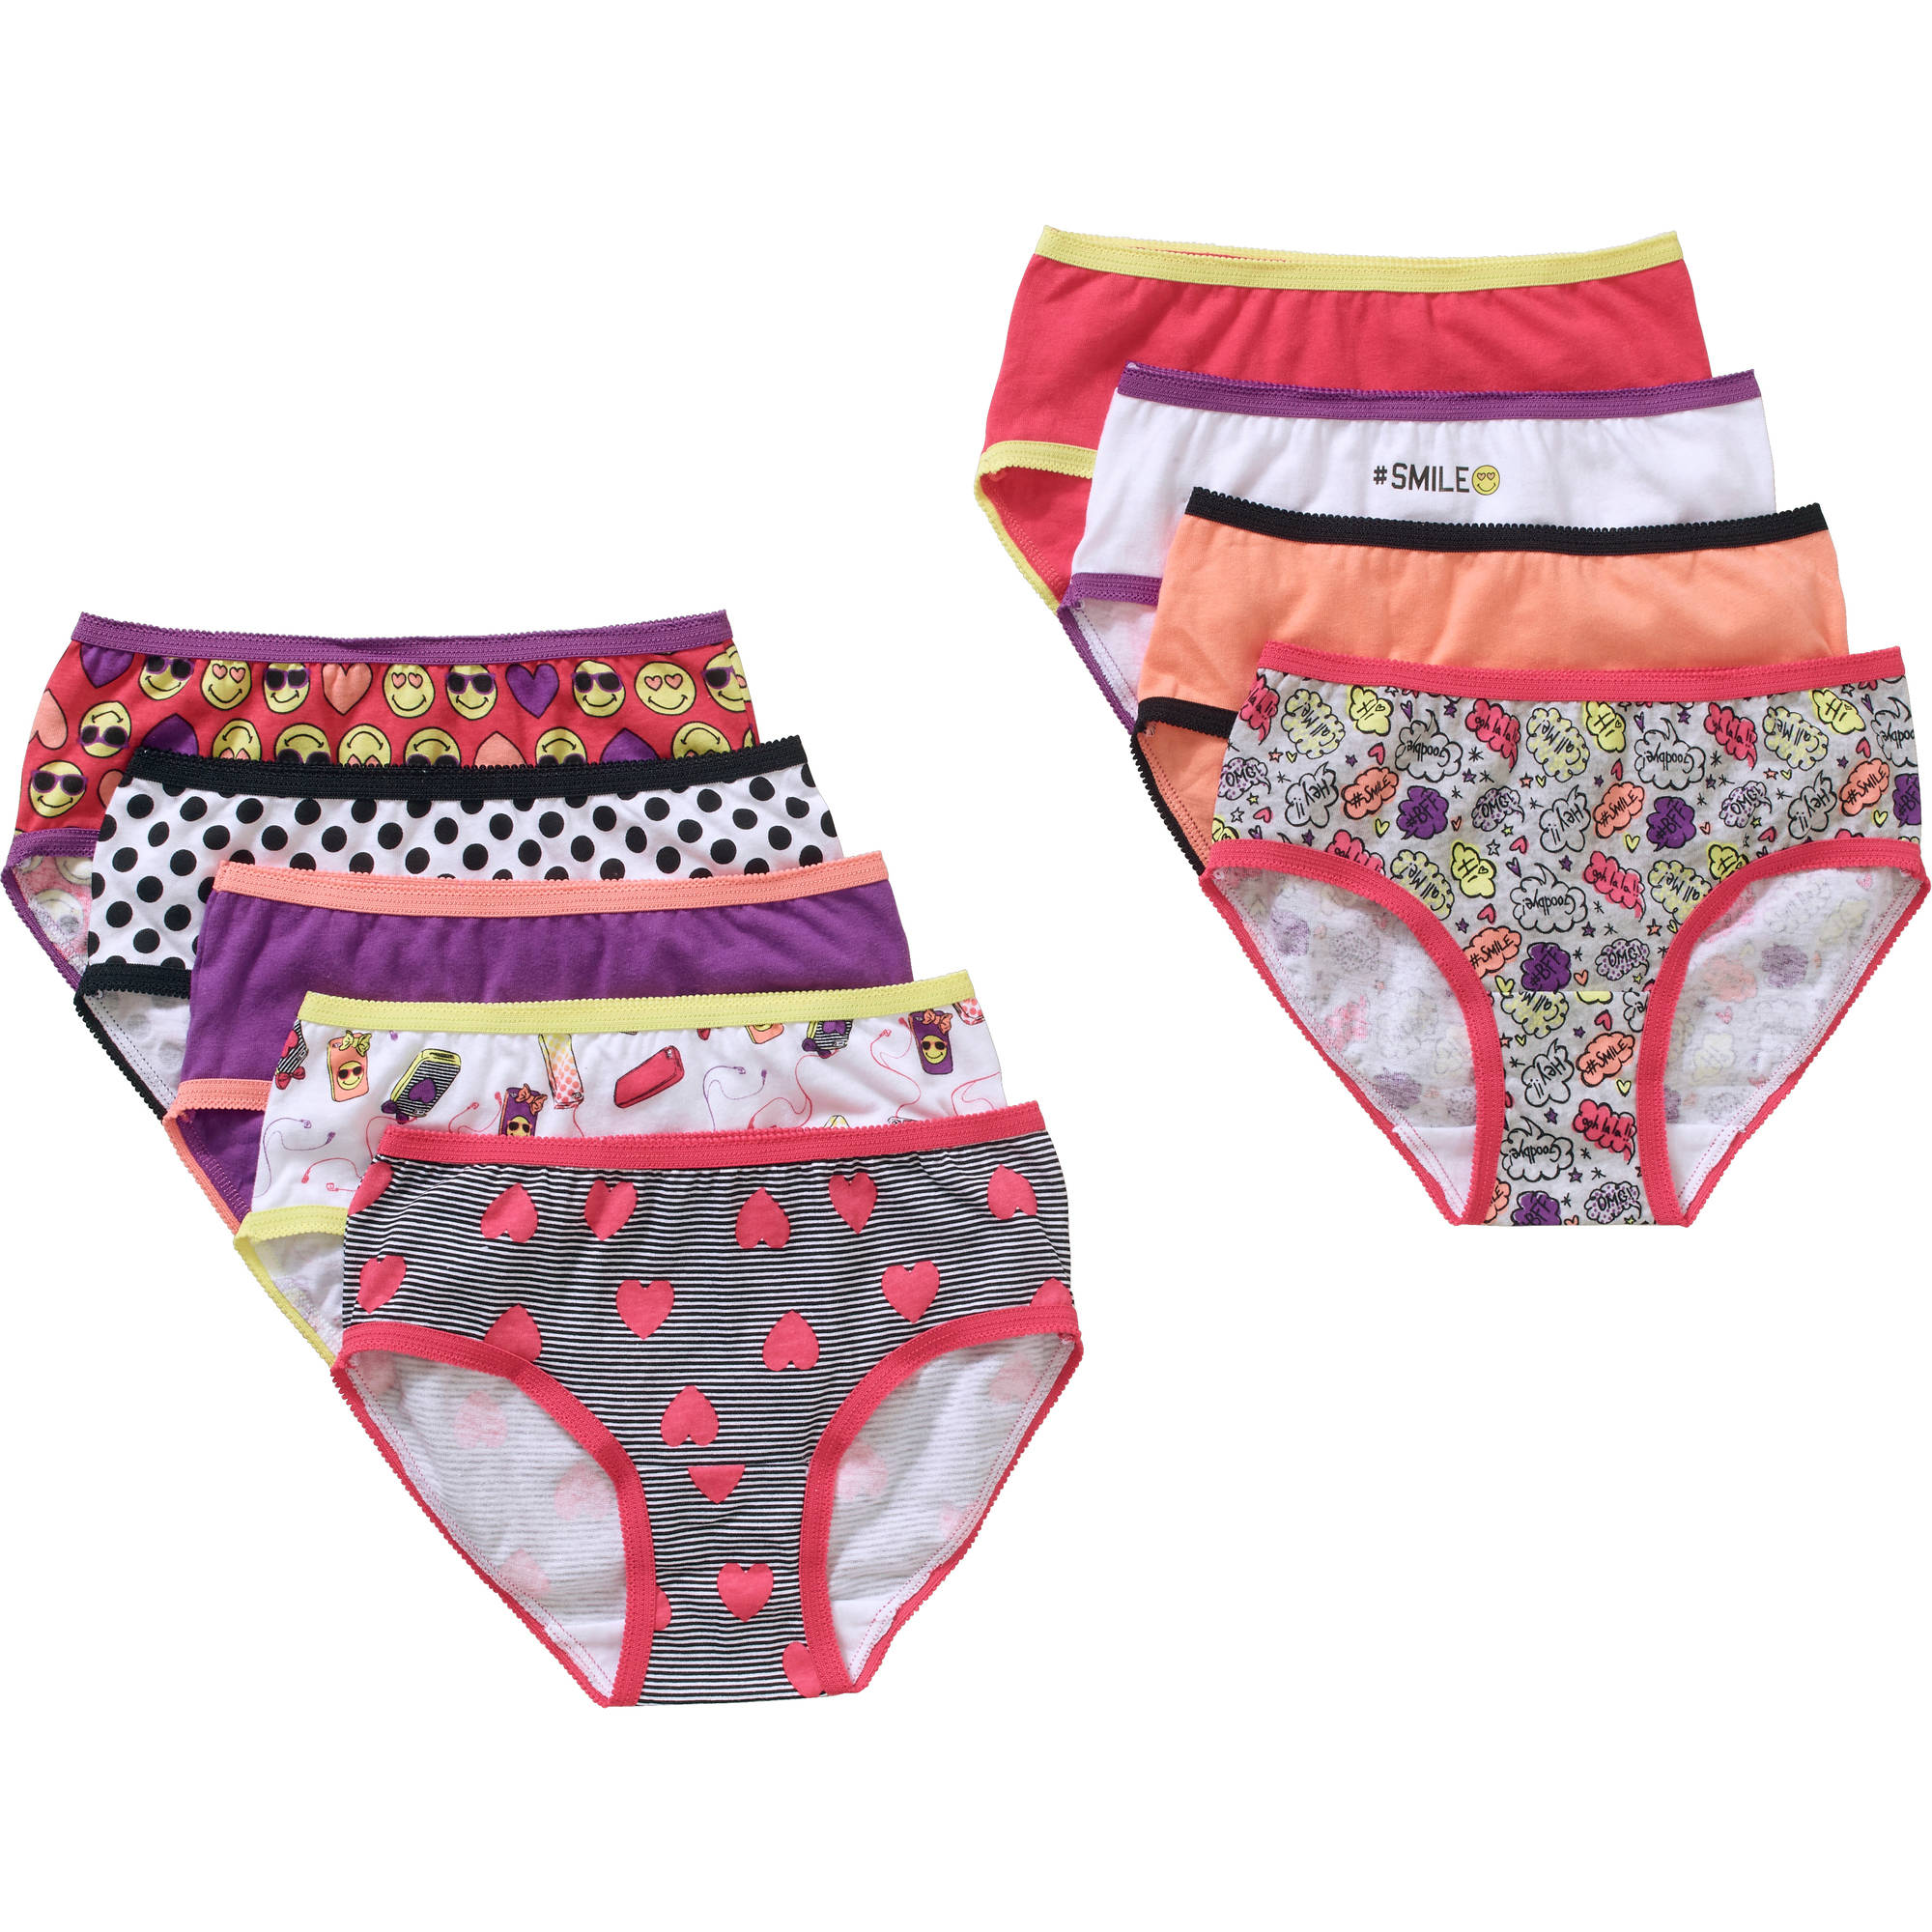 Faded Glory Girls' Cotton Hipster Panty 9 Pack